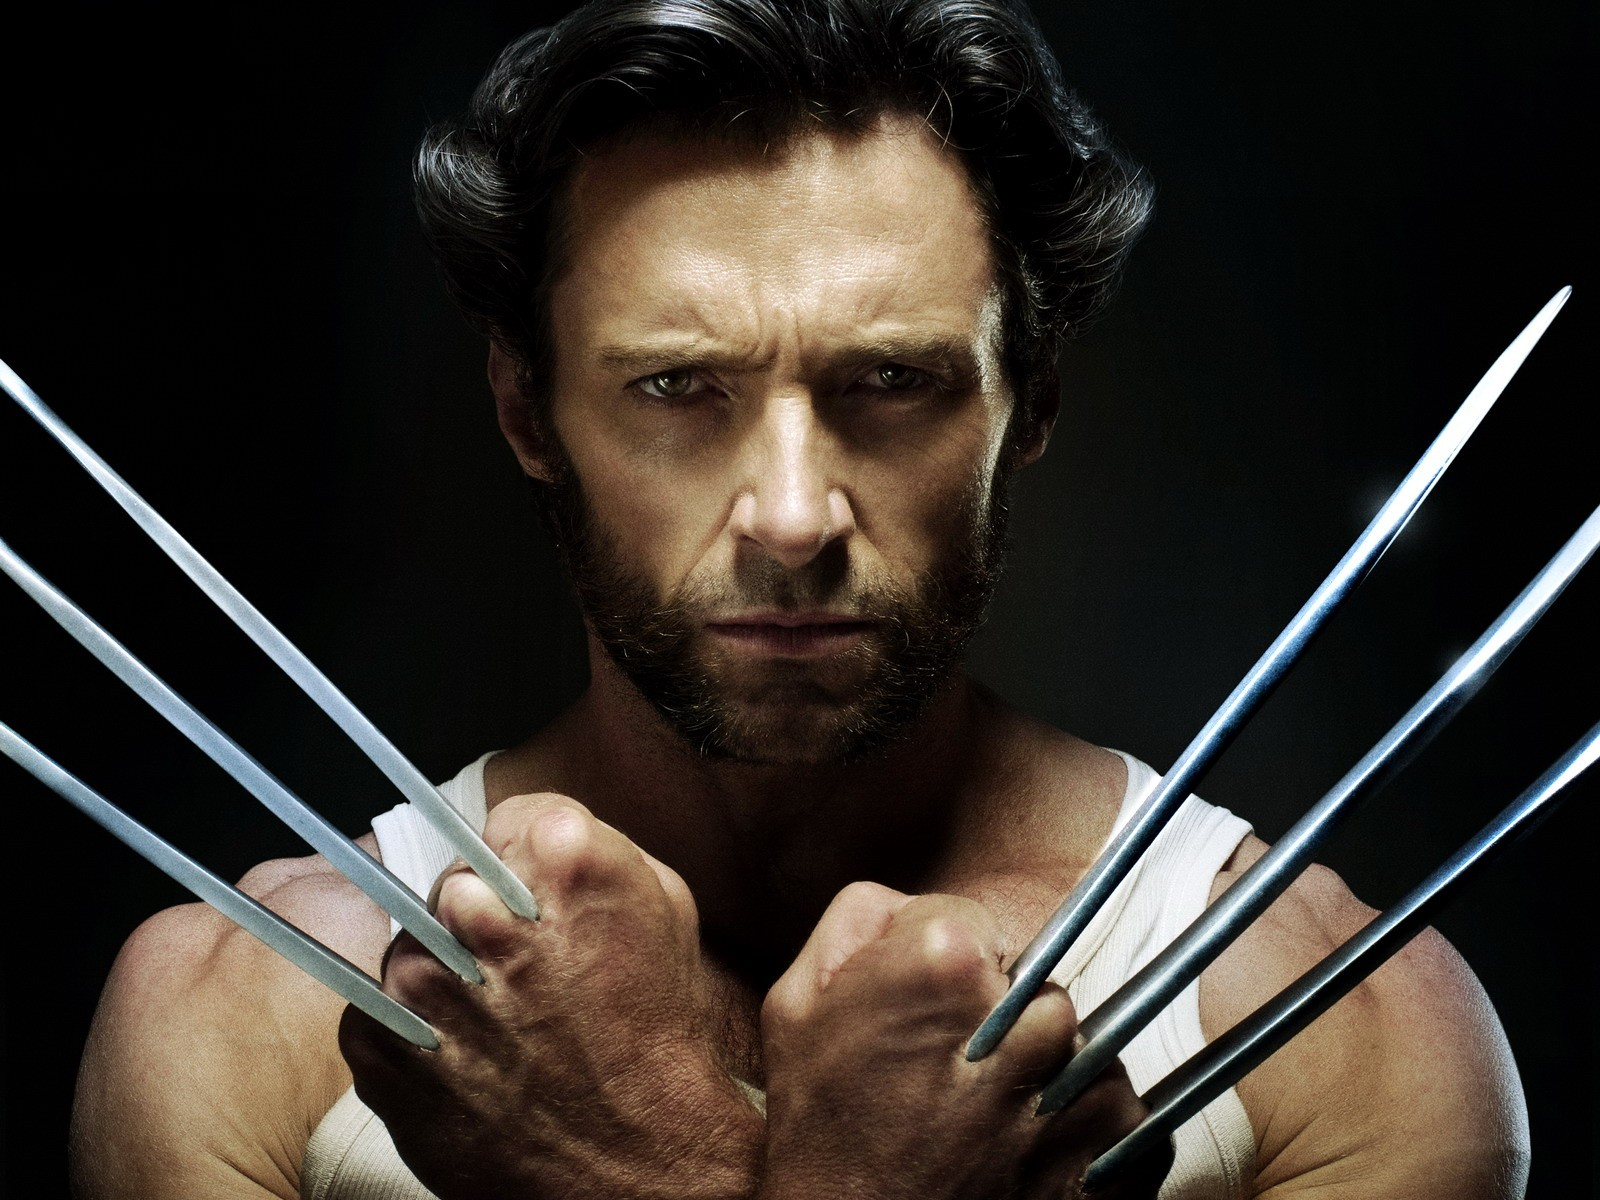 HUGH JACKMAN Won't Confirm Appearance in DEADPOOL or X-MEN: APOCALYPSE But Excited About WOLVERINE 3 - Comic Planet Culture For Life